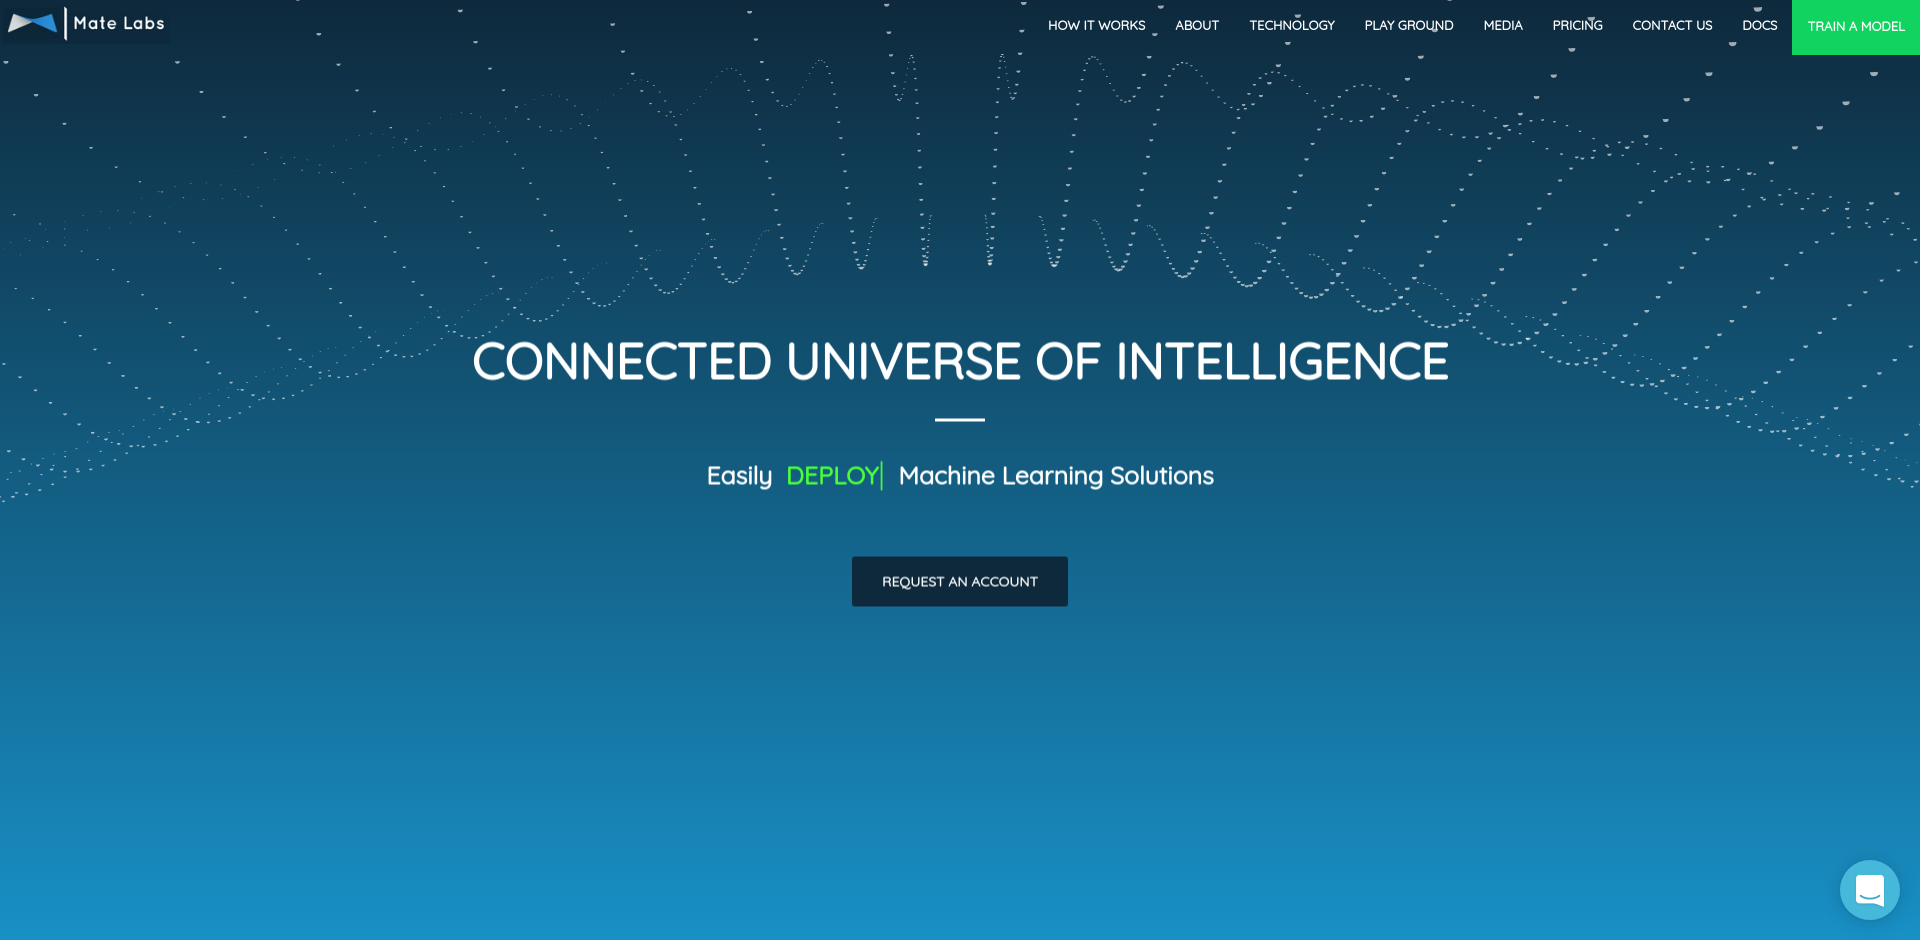 AI Startup Mate Labs gets $550000 in seed funding 15